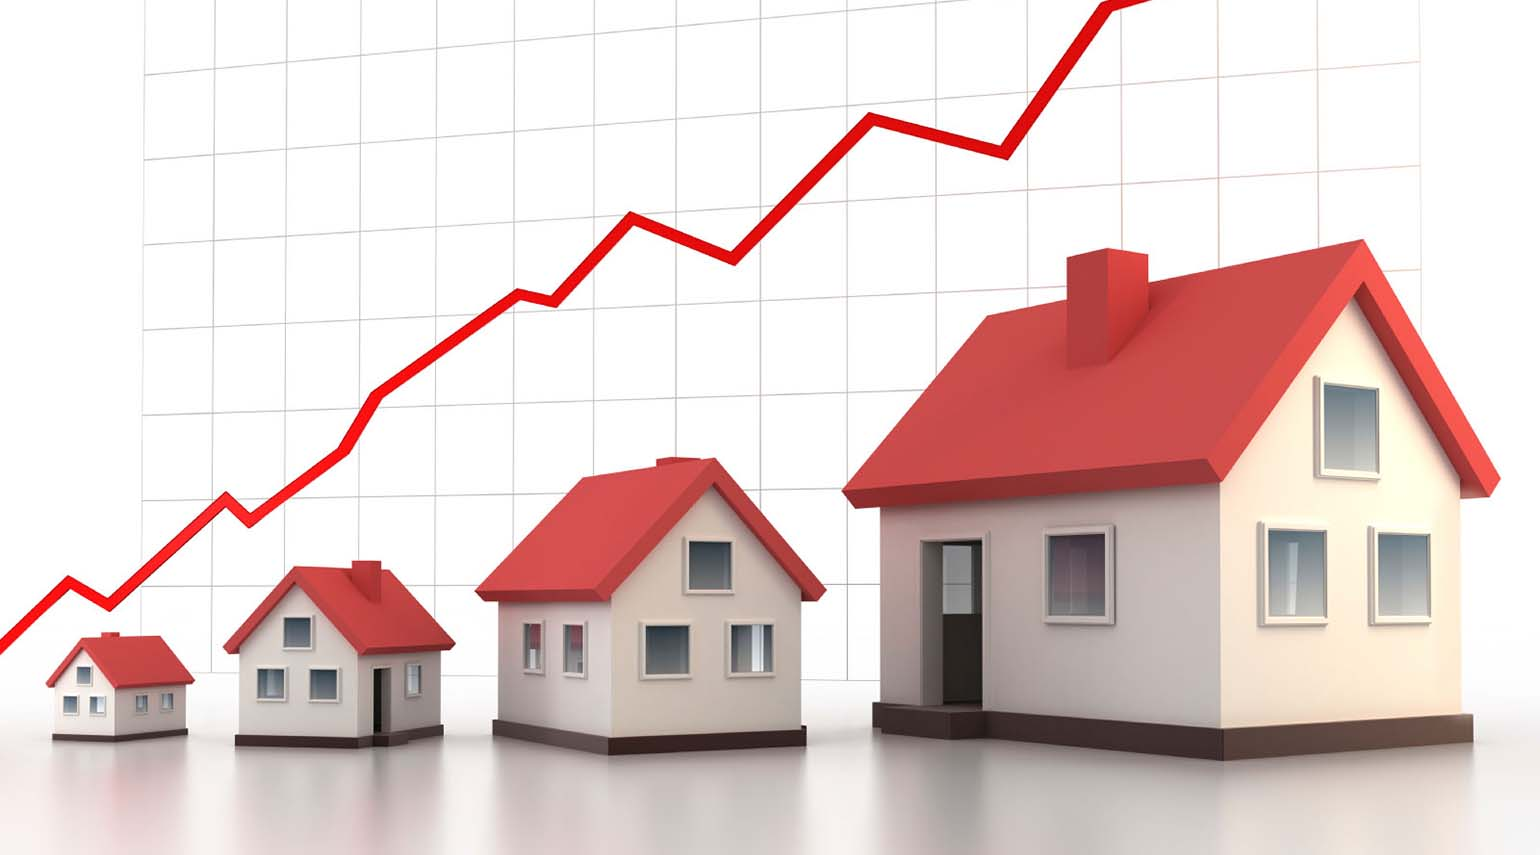 Philippine Real Estate Is It Still A Good Investment In 2014?